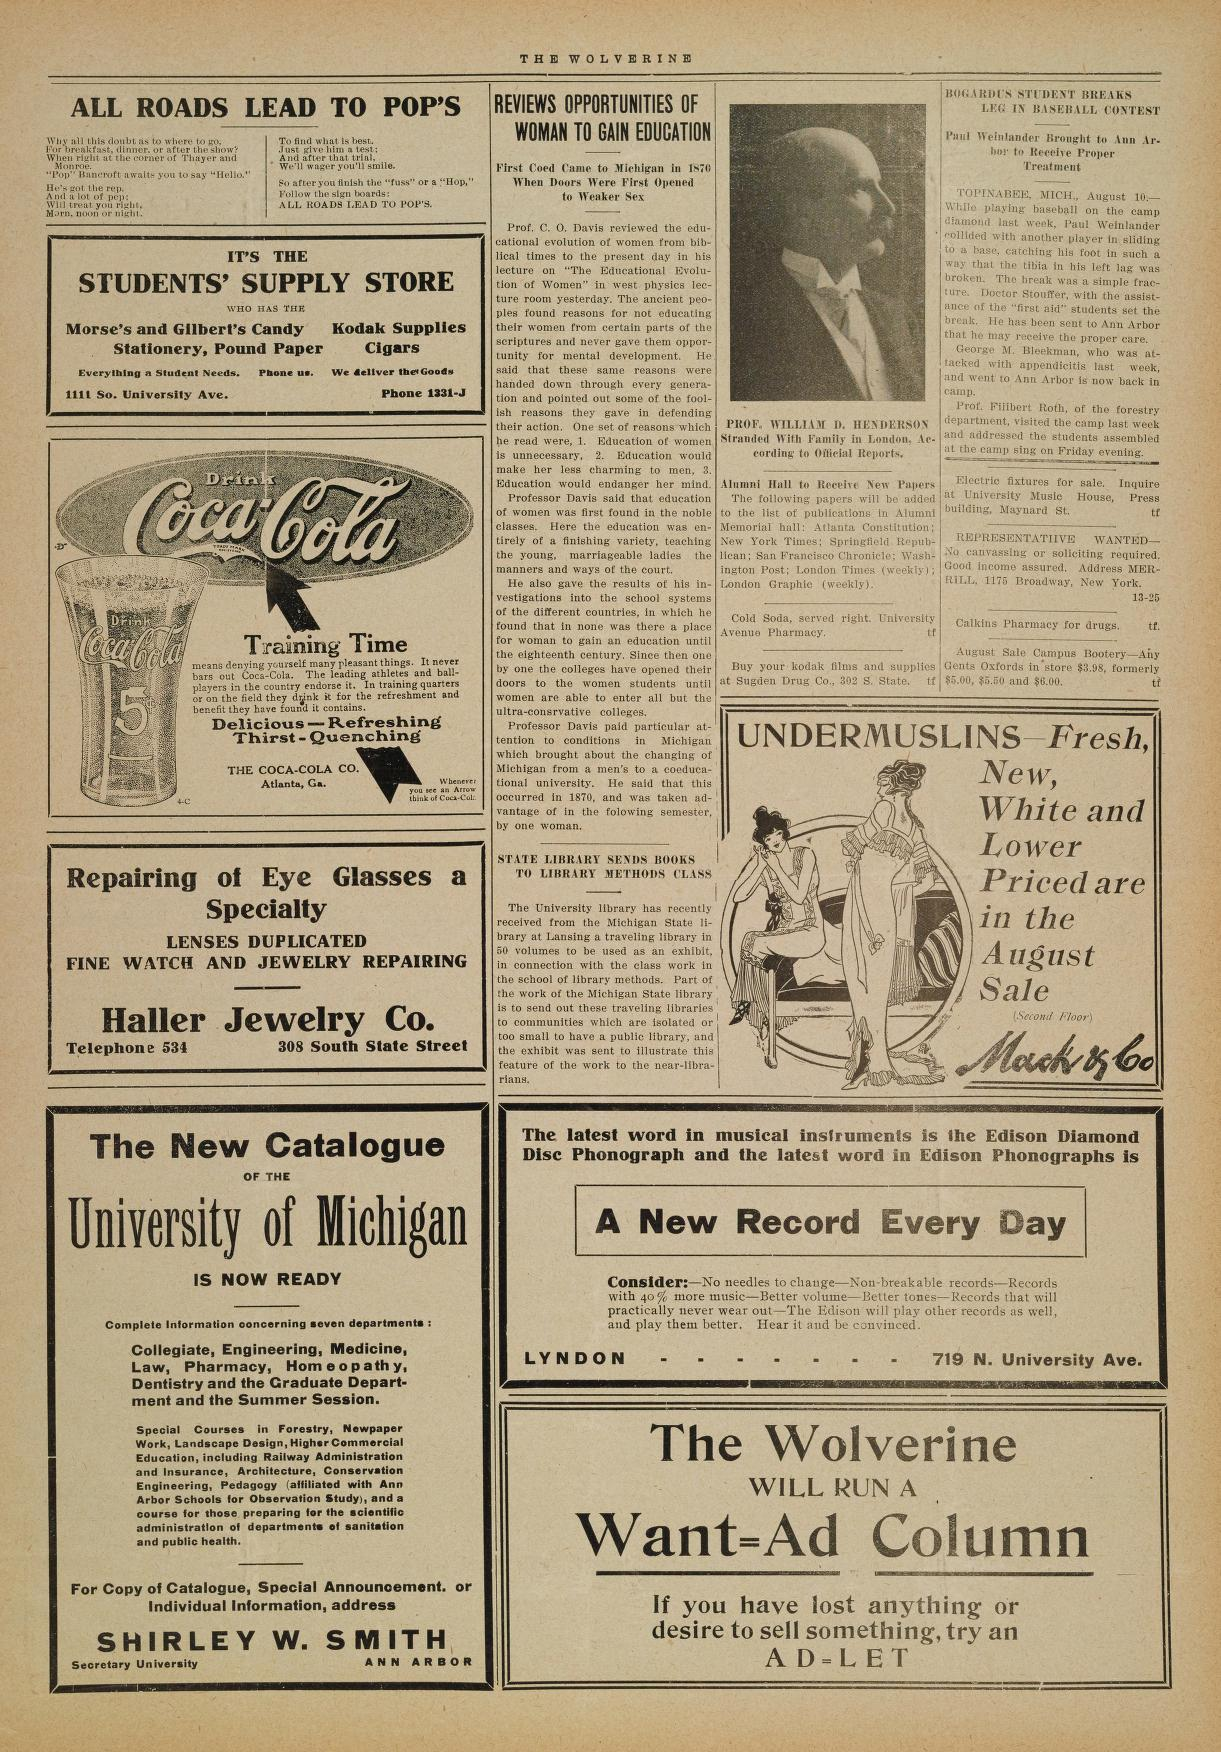 Michigan Daily Digital Archives - August 11, 1914 (vol  5